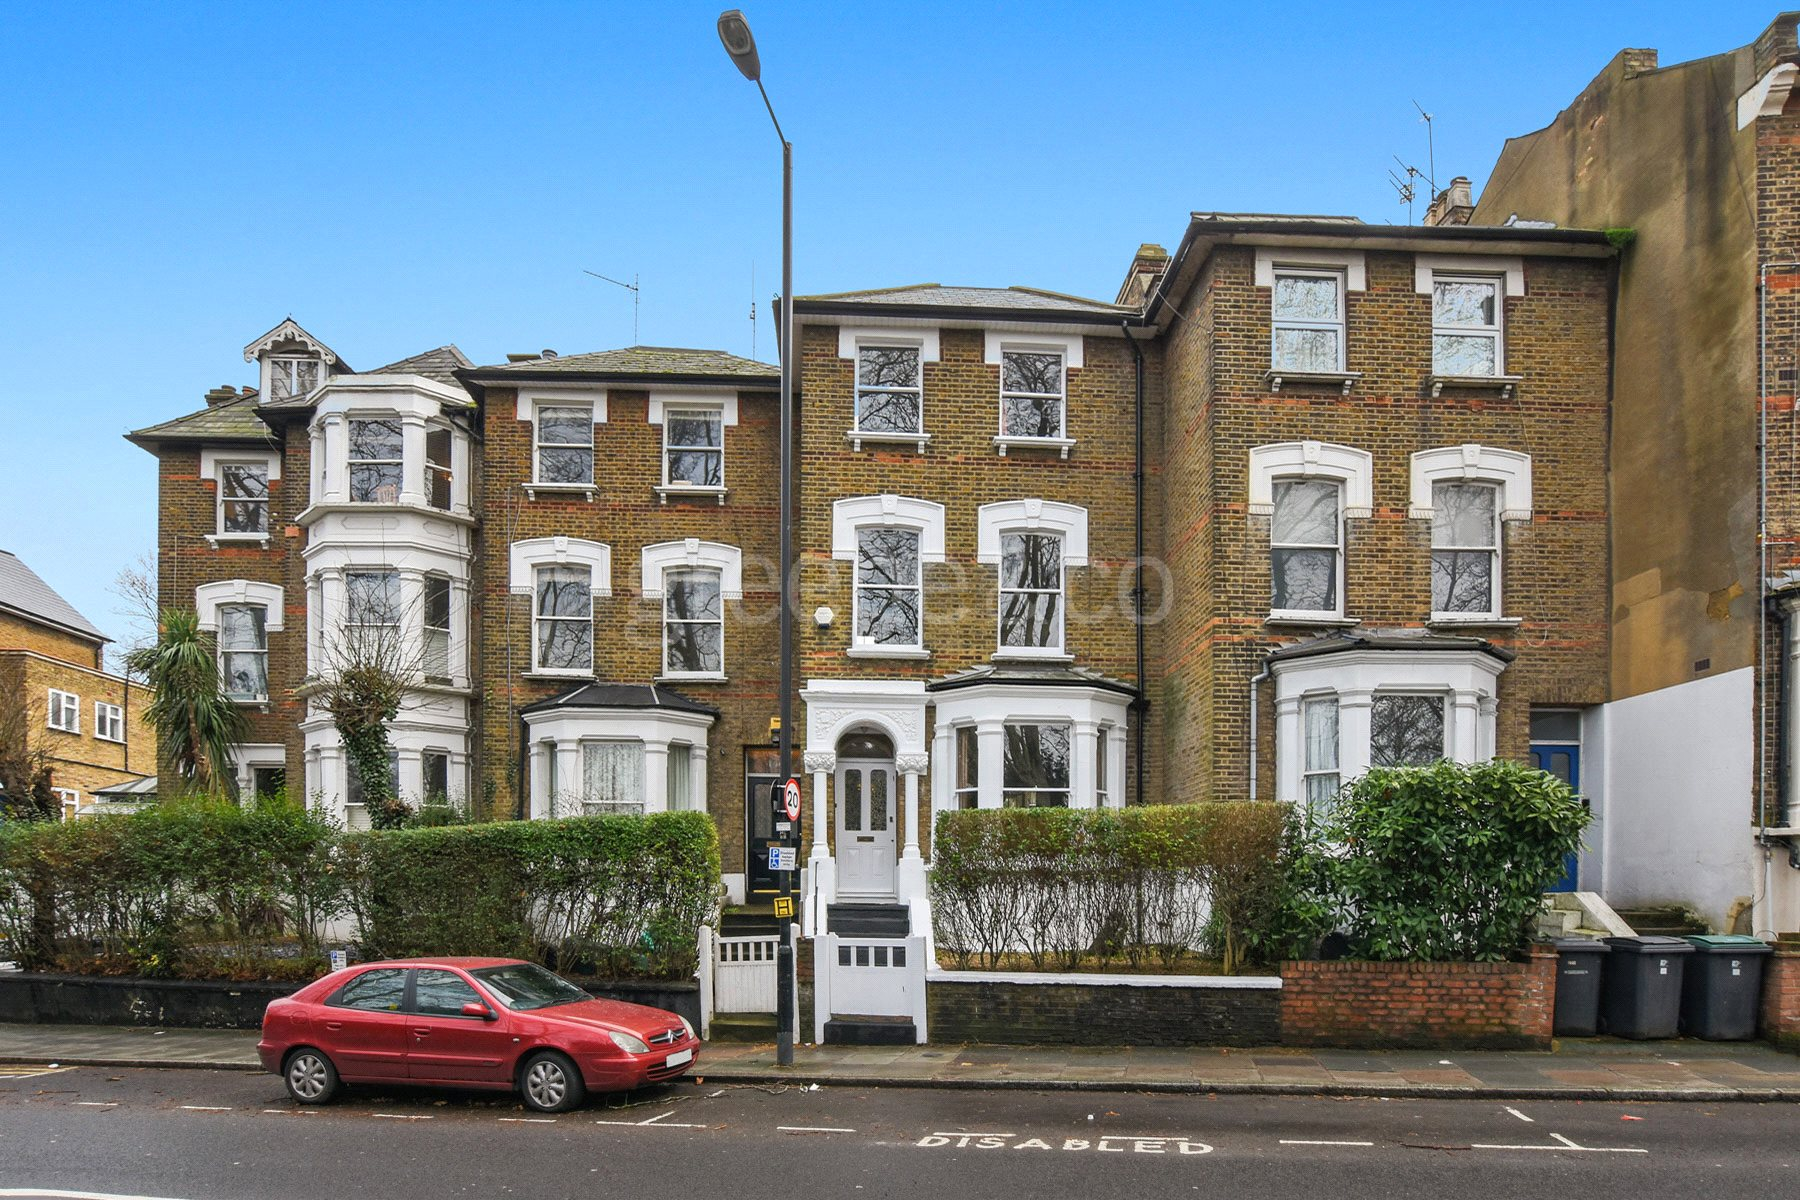 4 Bedrooms House for sale in Middle Lane, Crouch End, London, N8